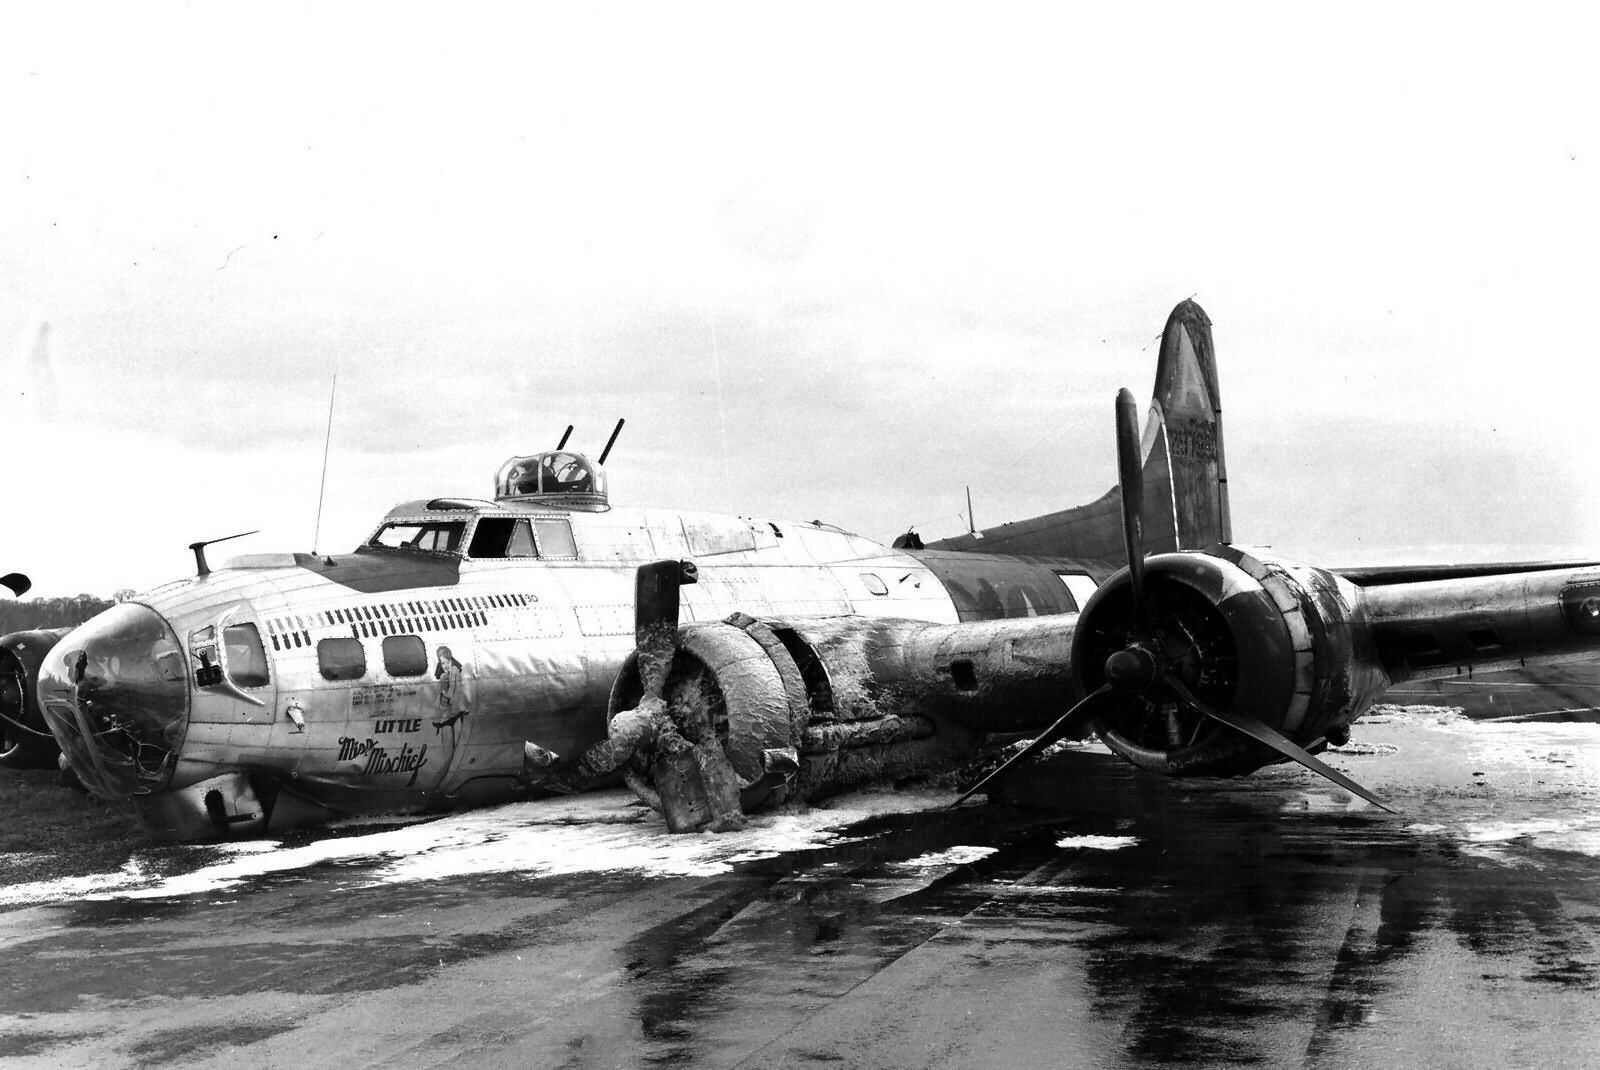 B17 after crash landing in England. History WW2